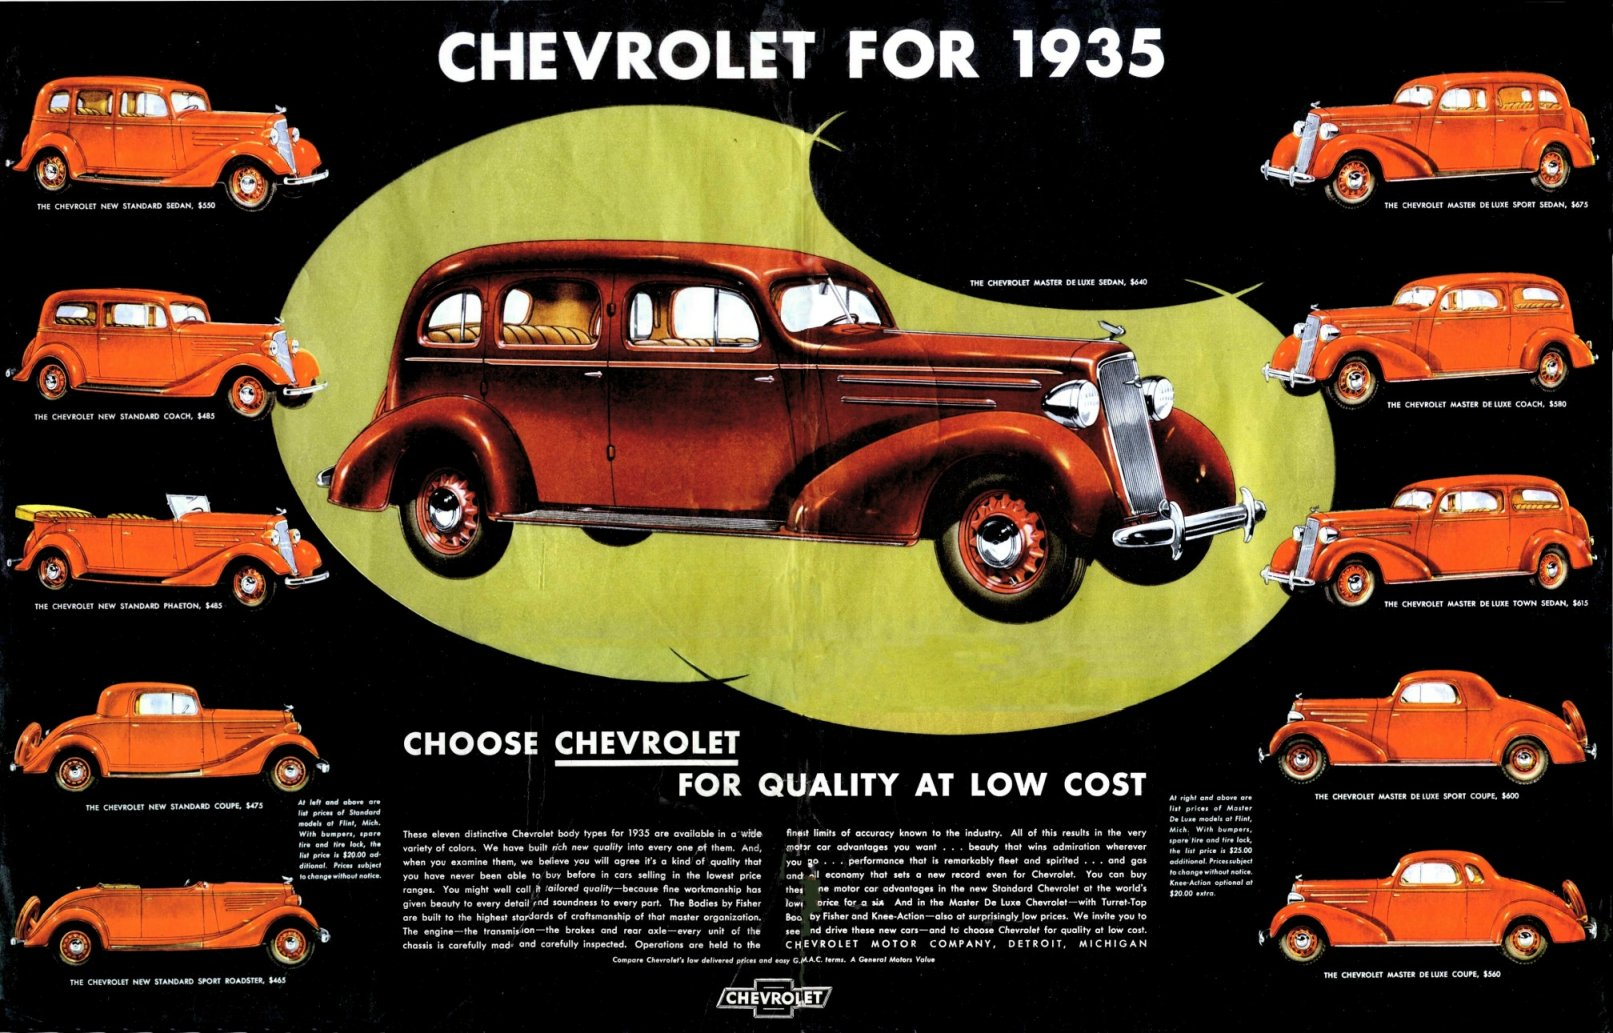 Directory Index: Chevrolet/1935